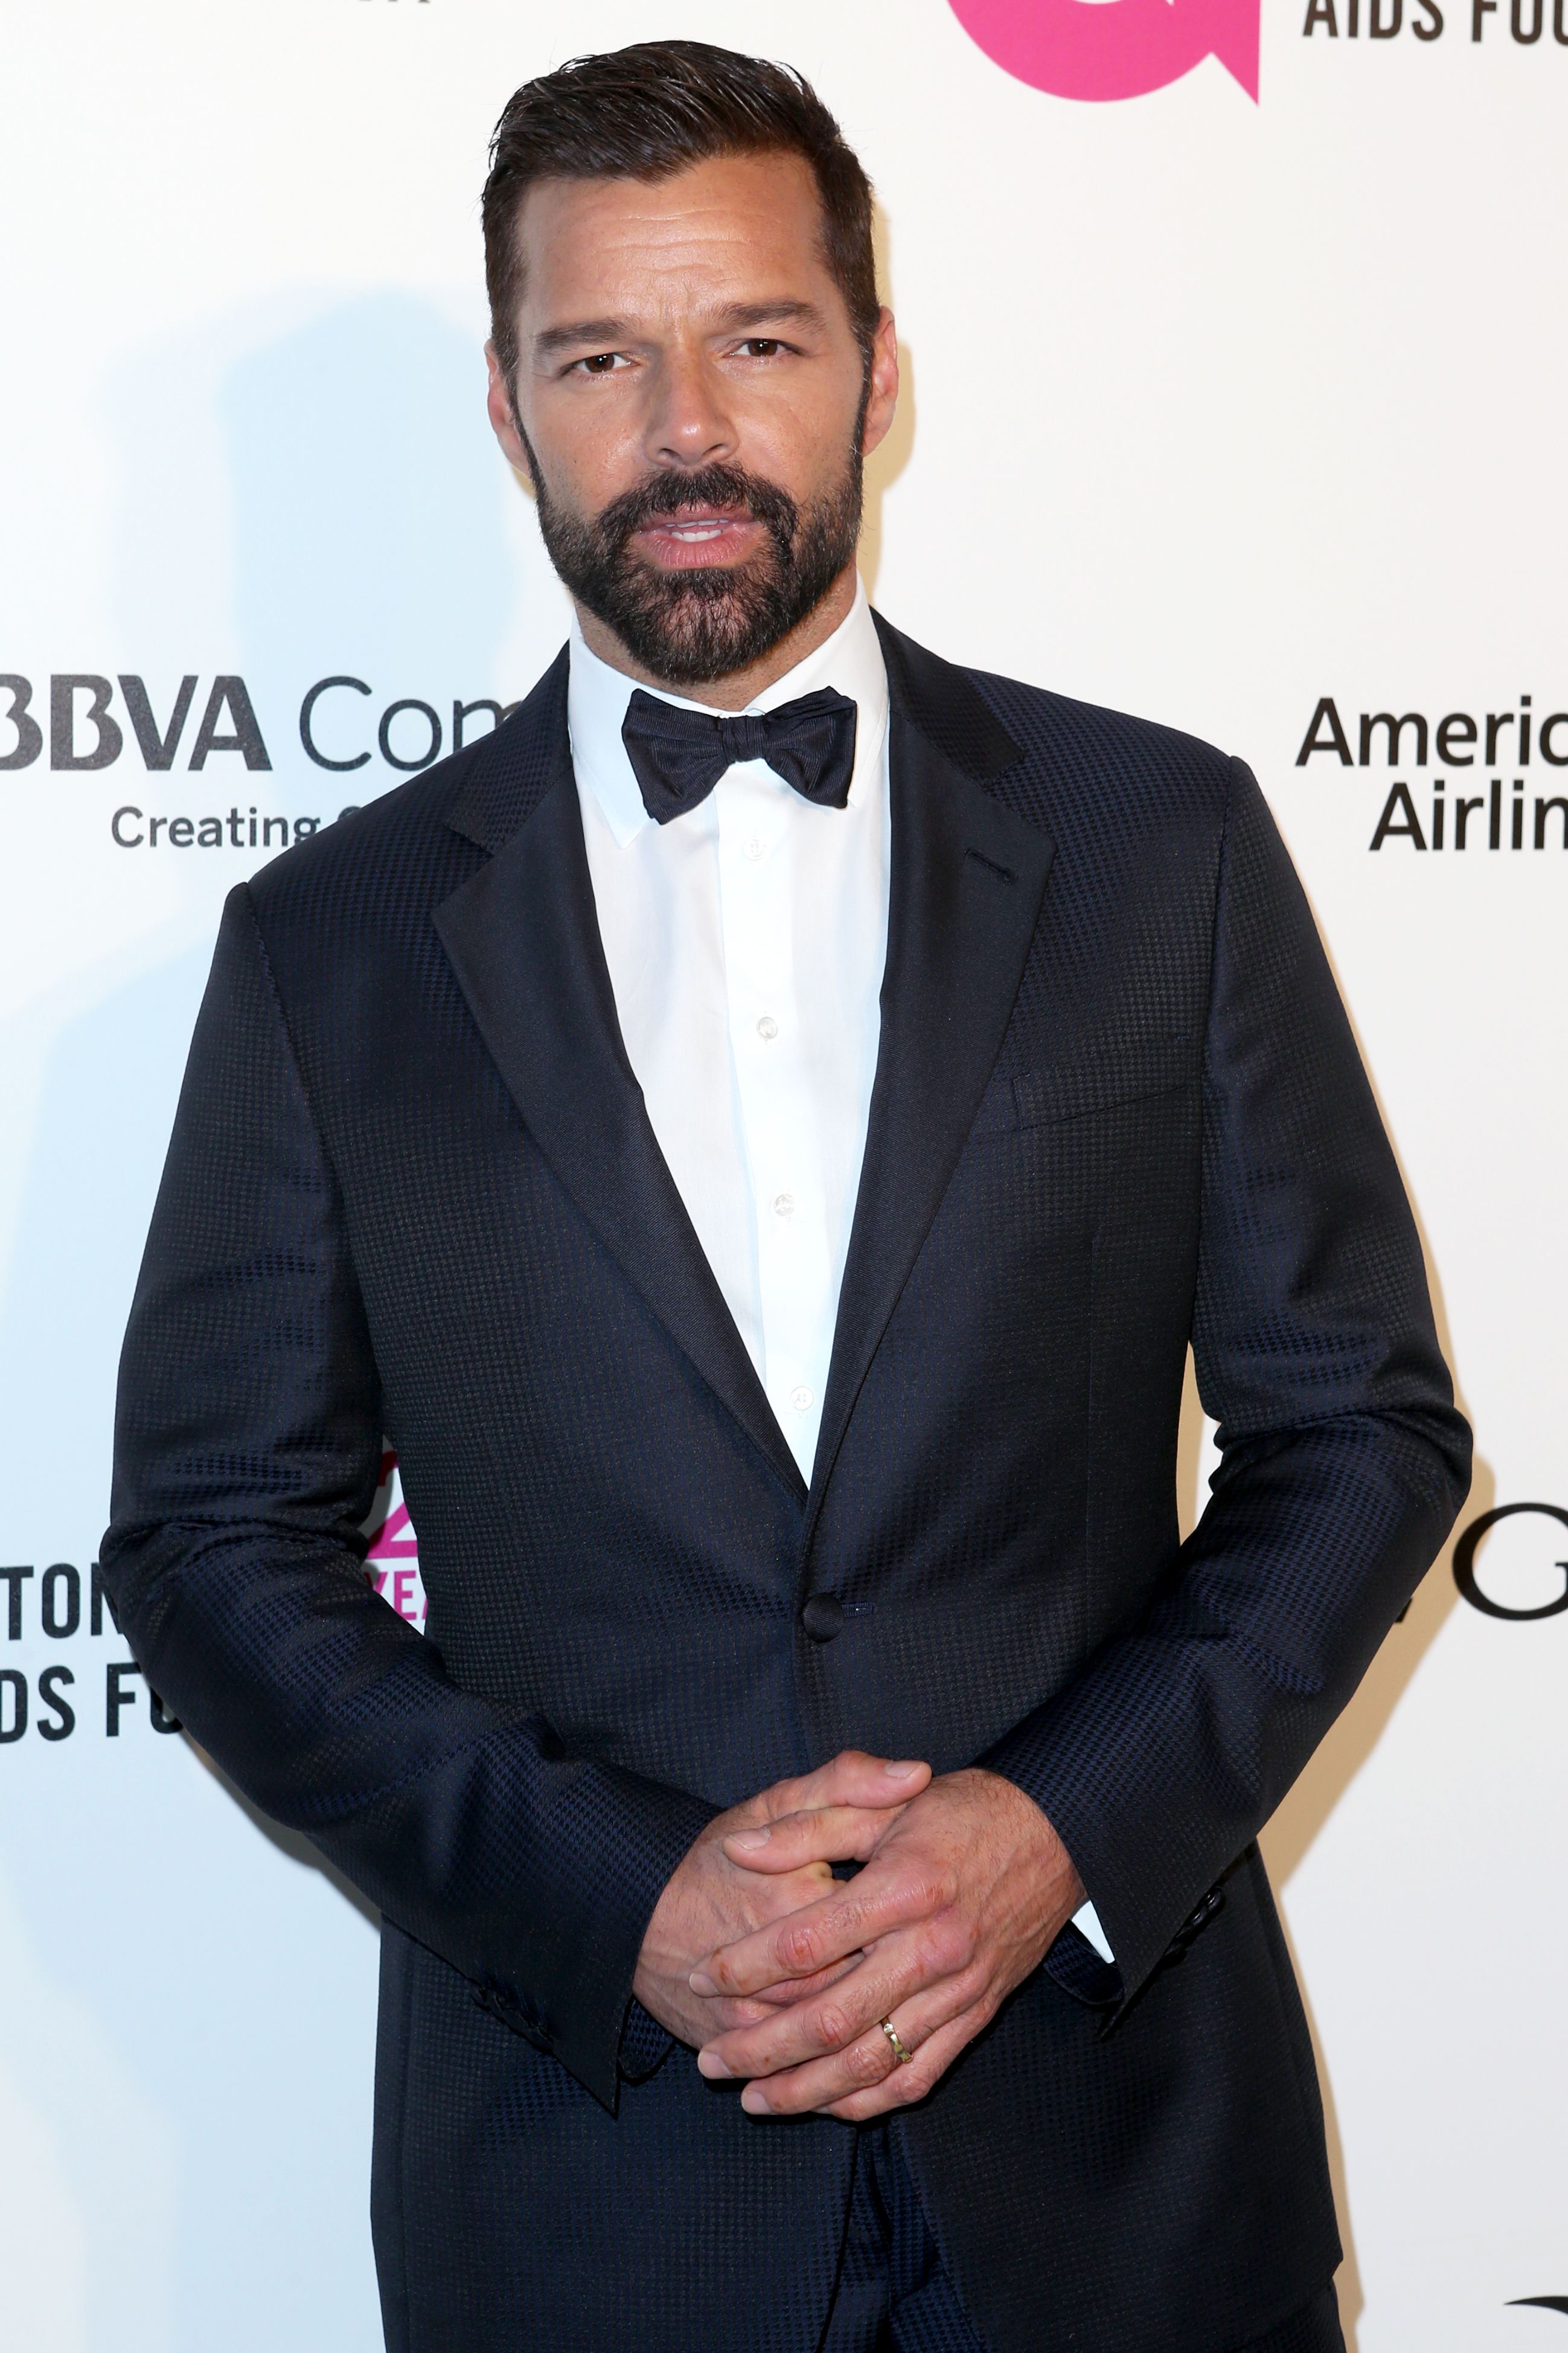 Ricky Martin Elton John AIDS Foundation Academy Awards Viewing Party, Arrivals, Los Angeles, USA - 04 Mar 2018